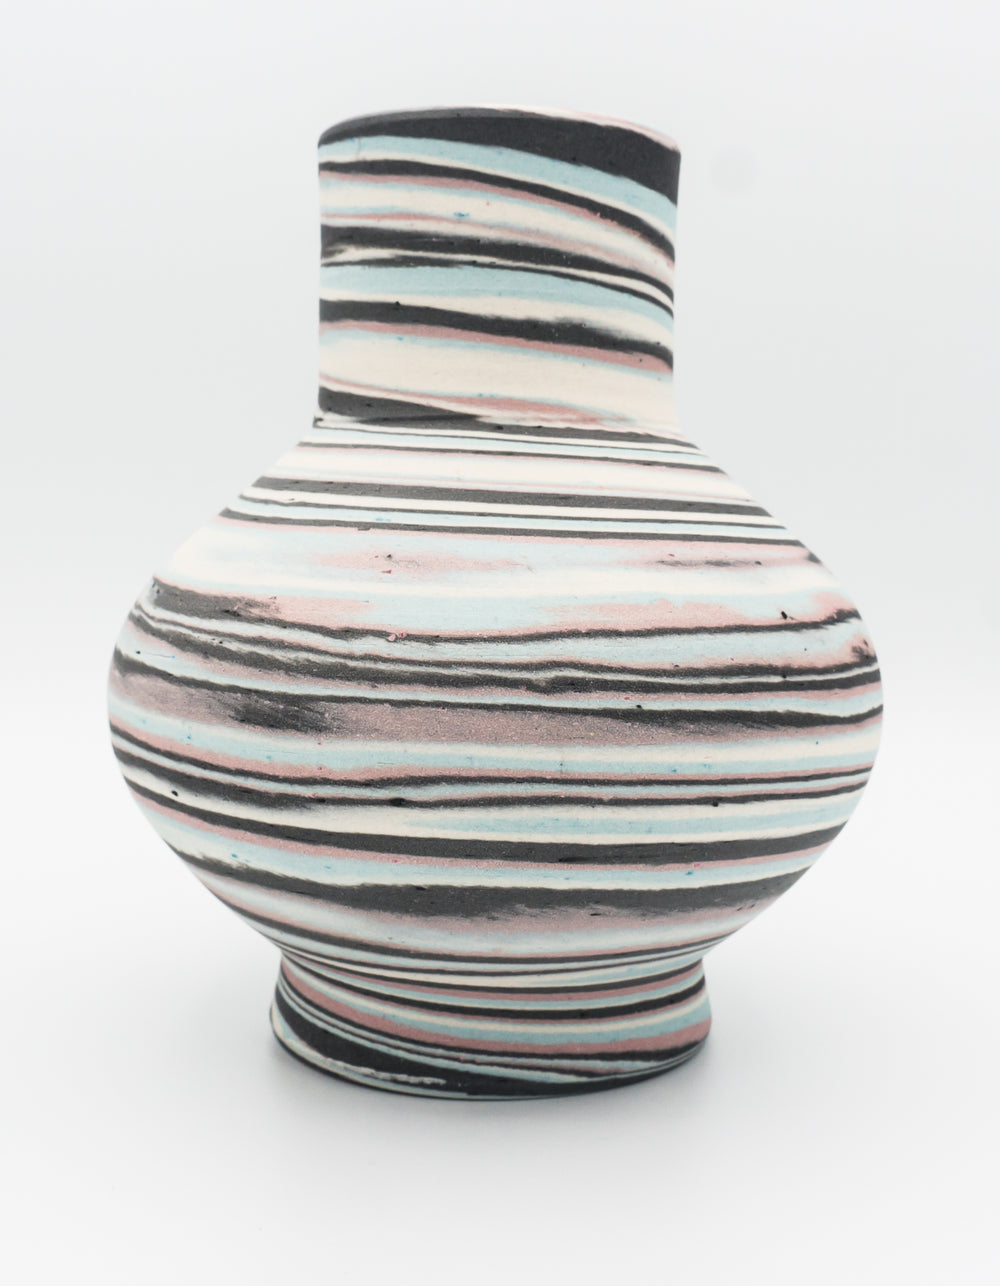 Agateware Bottle Shaped Vase in Pink, Blue, Black & White